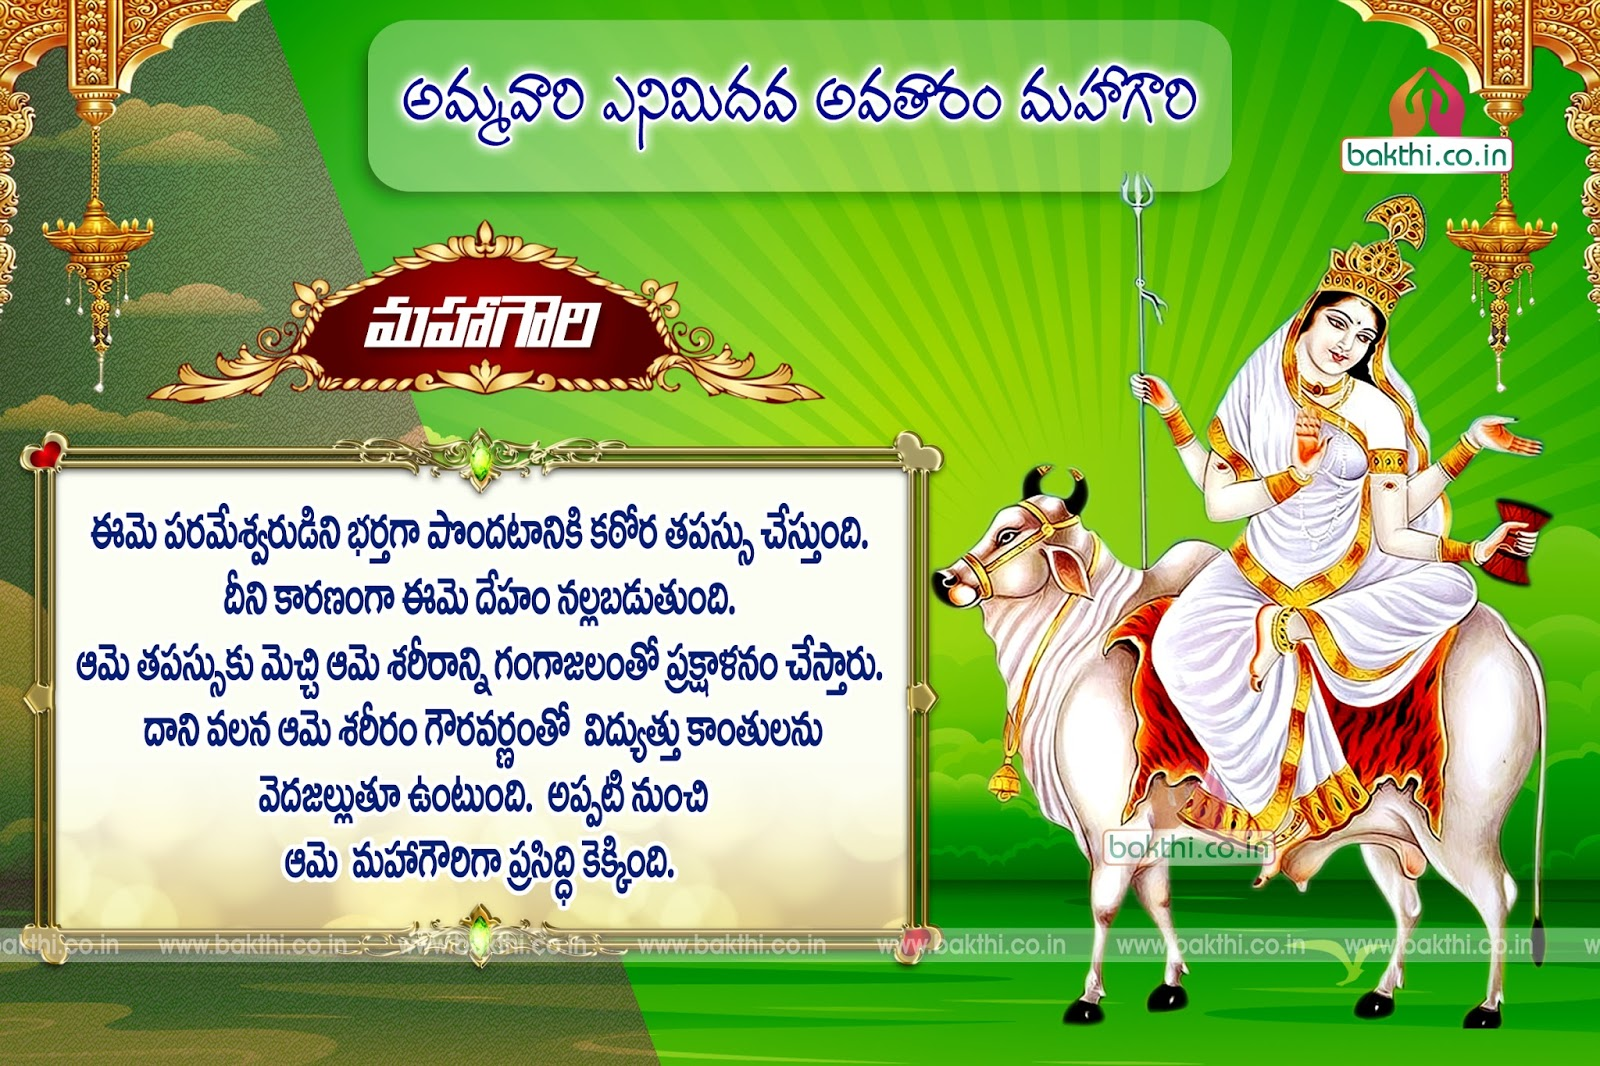 Happy dussehra telugu wishes quotes and greetings bakthi dussehra telugu quotes and greetings with 8thday maha m4hsunfo